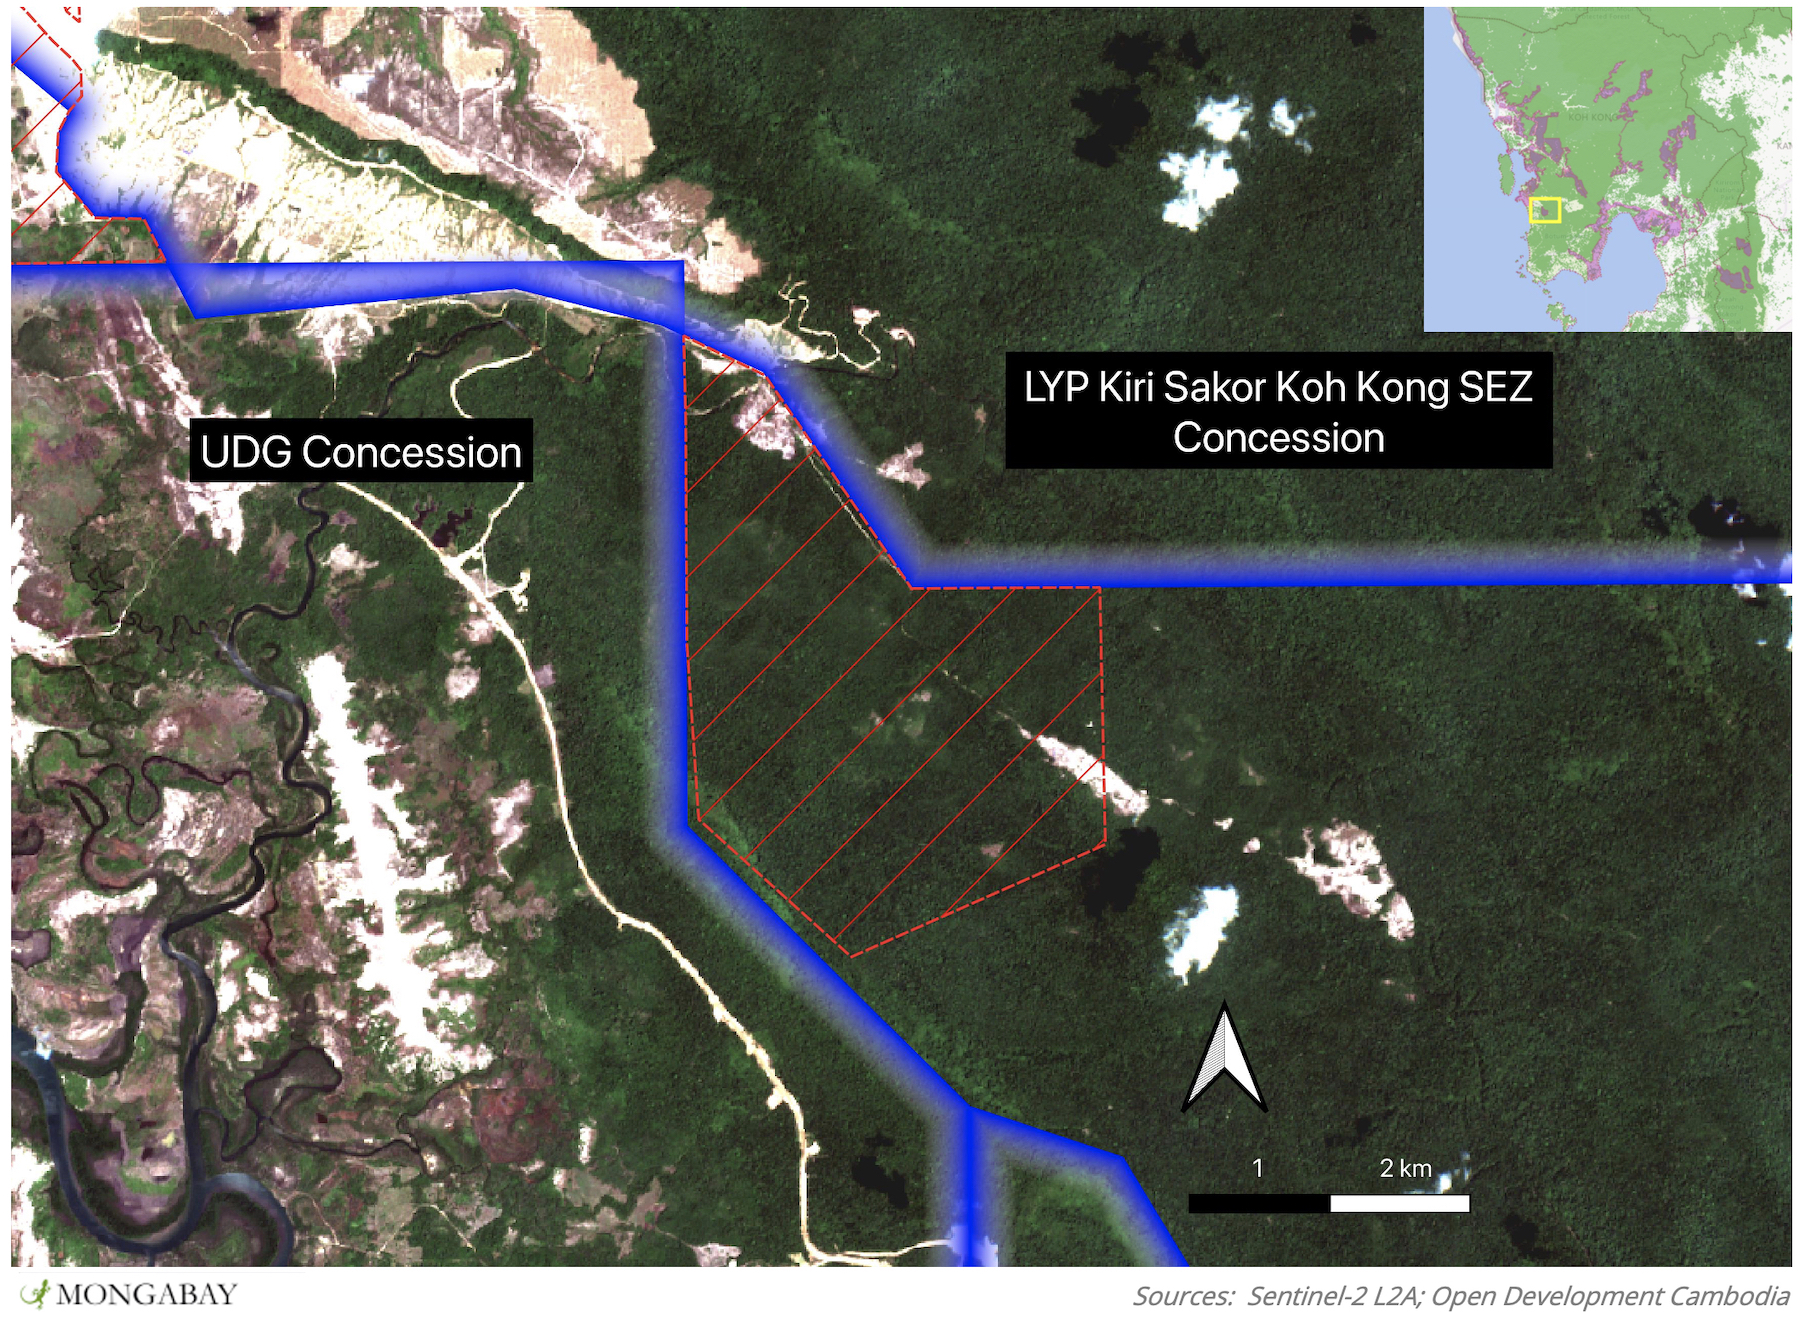 Area (approximately 800 ha) allocated land under sub-decree No. 30 (red) in the Botum Sakor National Park adjacent to two neighbouring concessions allocated to LYP Kiri Sakor Koh Kong SEZ and Union Development Group overlaid onto satellite imagery from 04/03/2021.